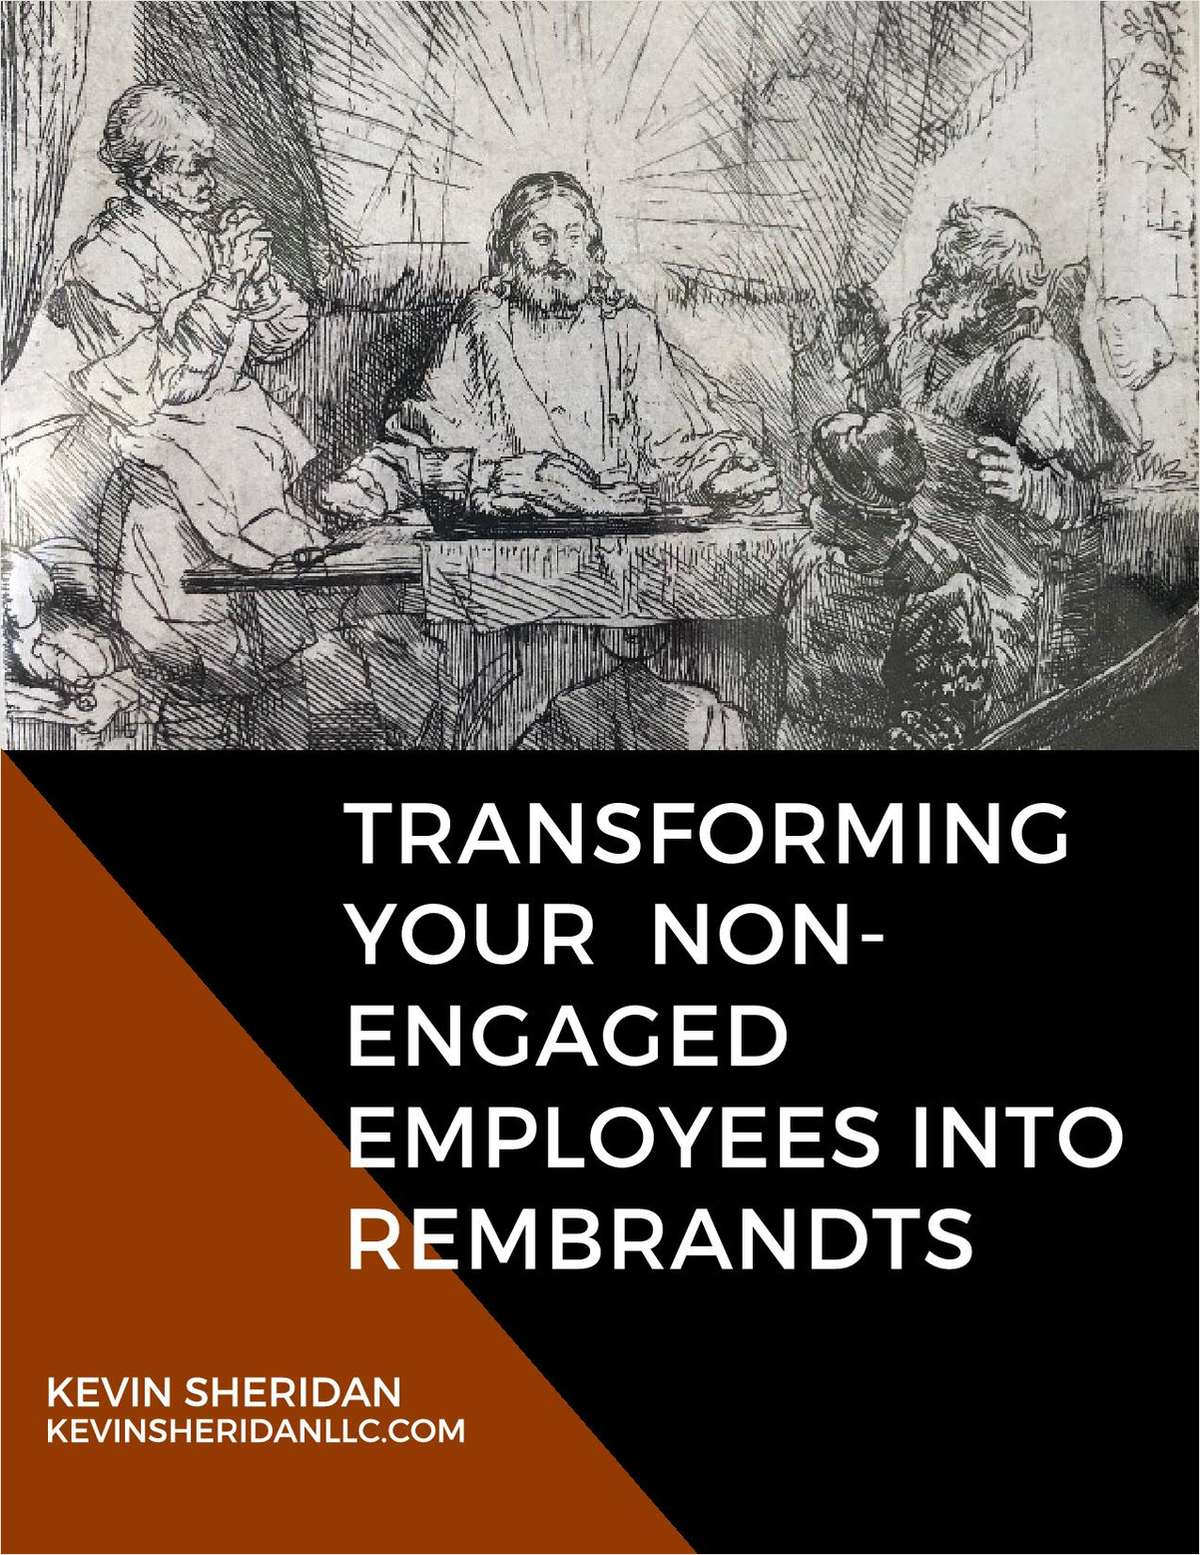 Transforming Your Non-Engaged Employees into Rembrandts